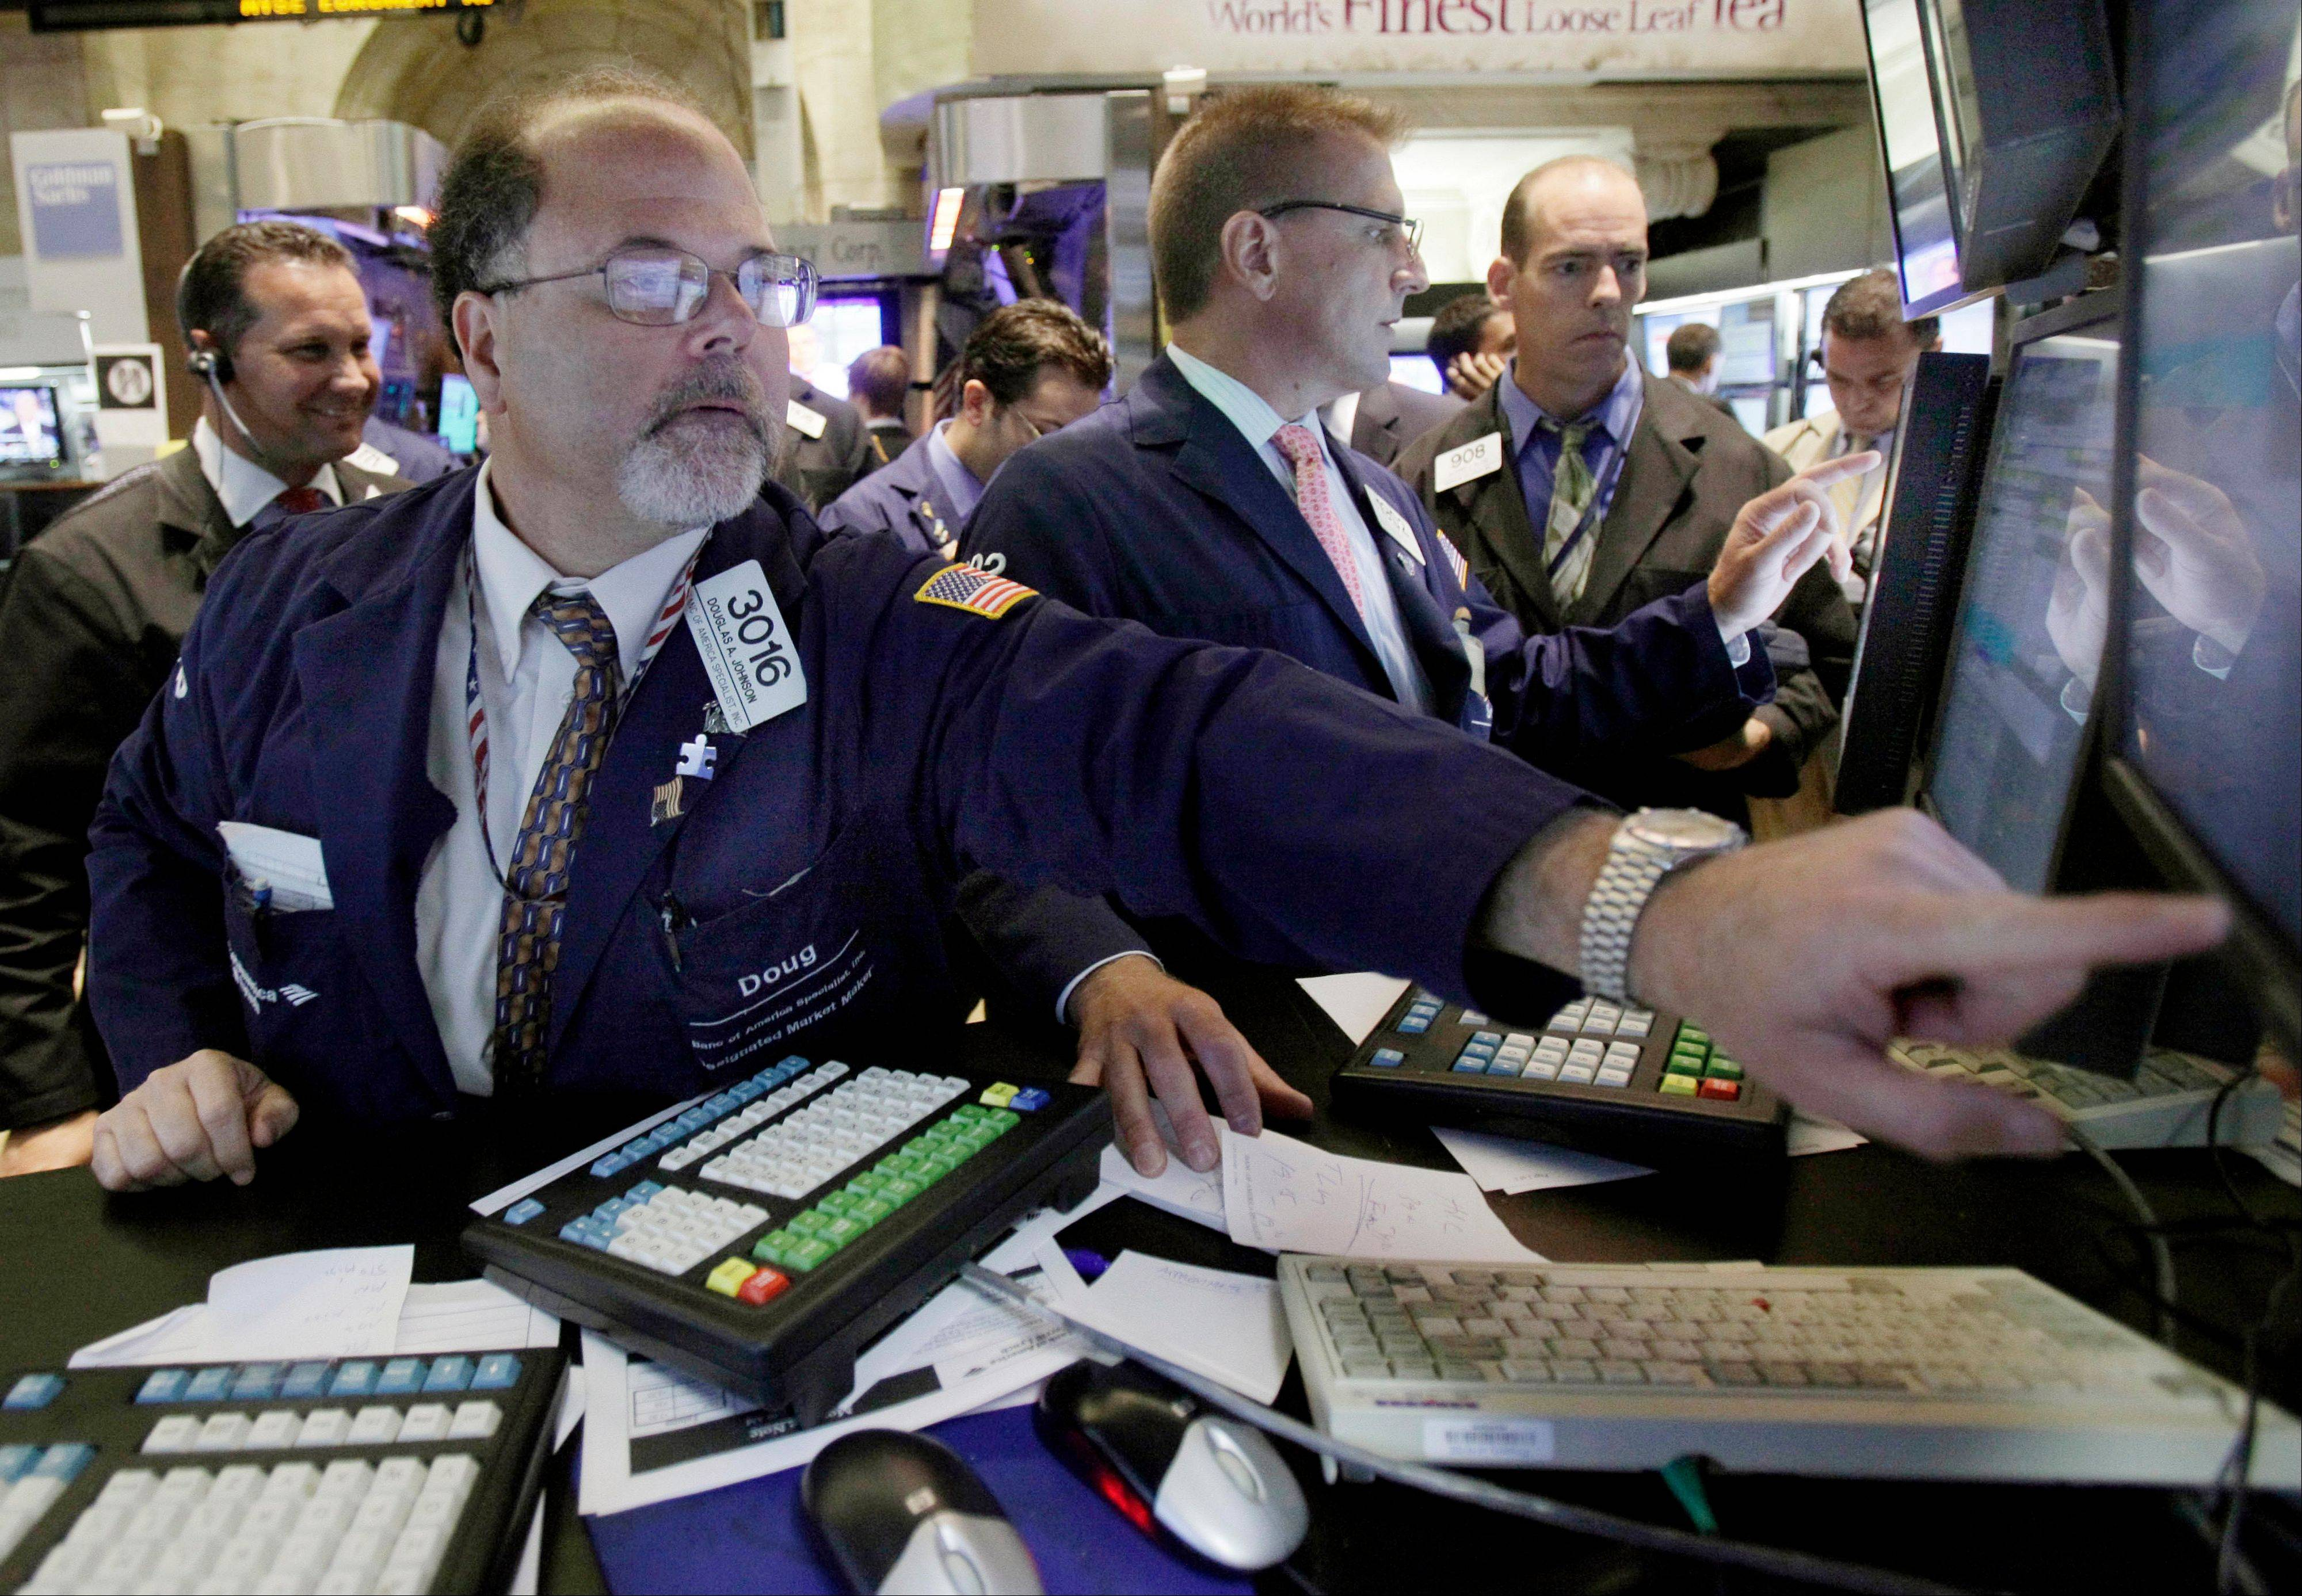 Uncertainty on Wall Street over whether Washington will resolve the debt crisis has led to a very jittery market.